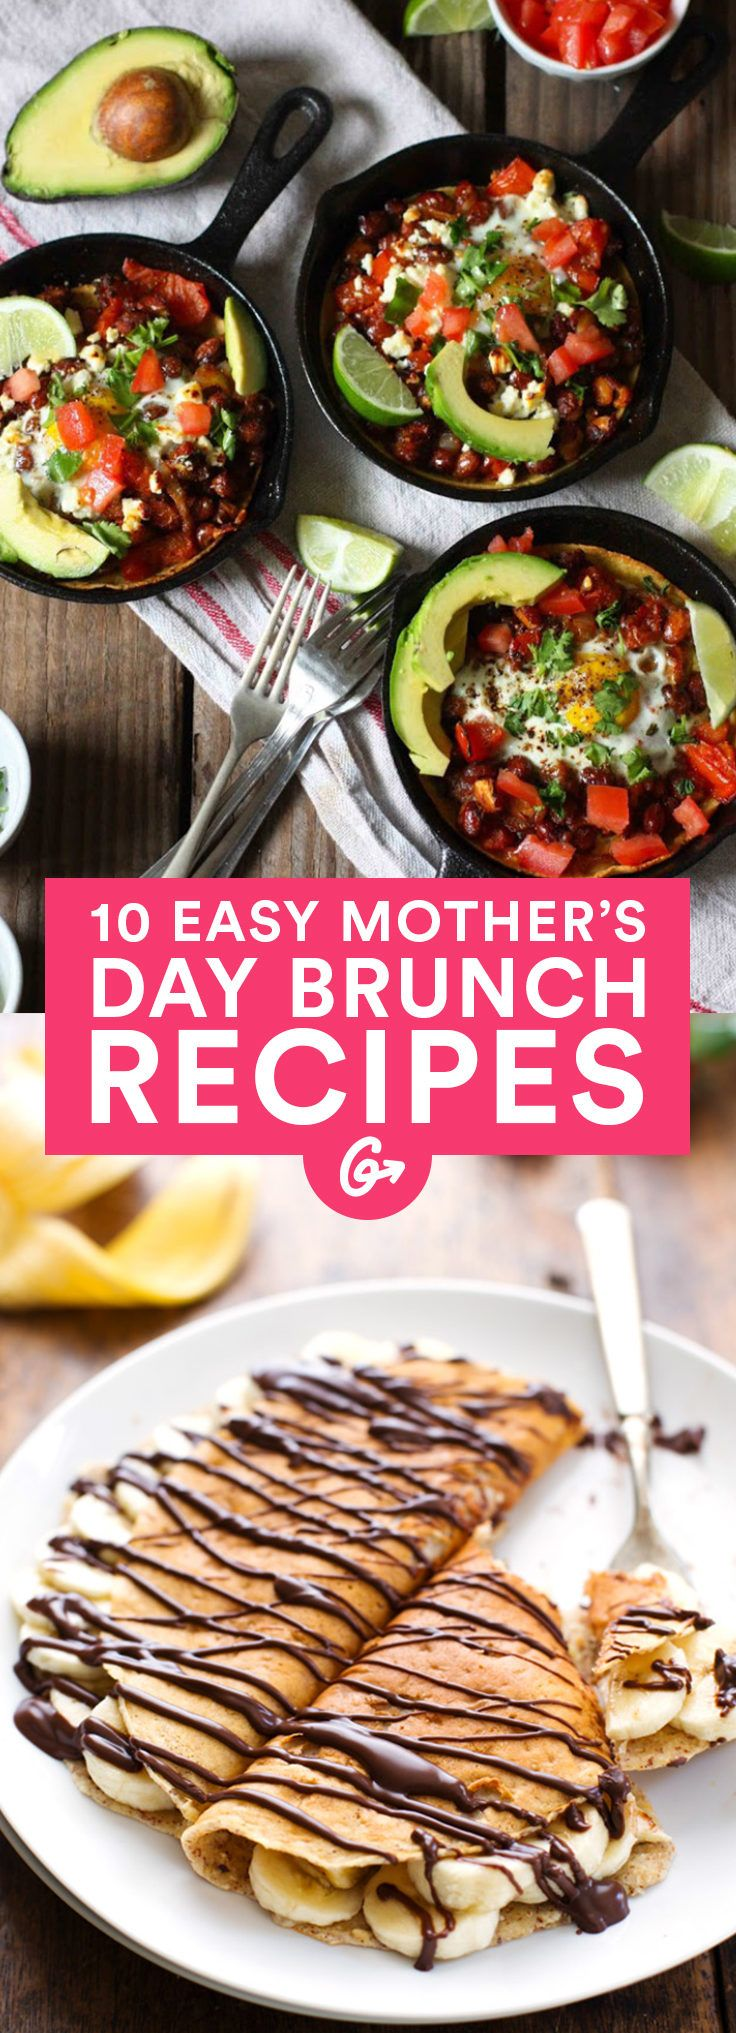 best 25+ sunday brunch ideas on pinterest | brunch, brunch foods